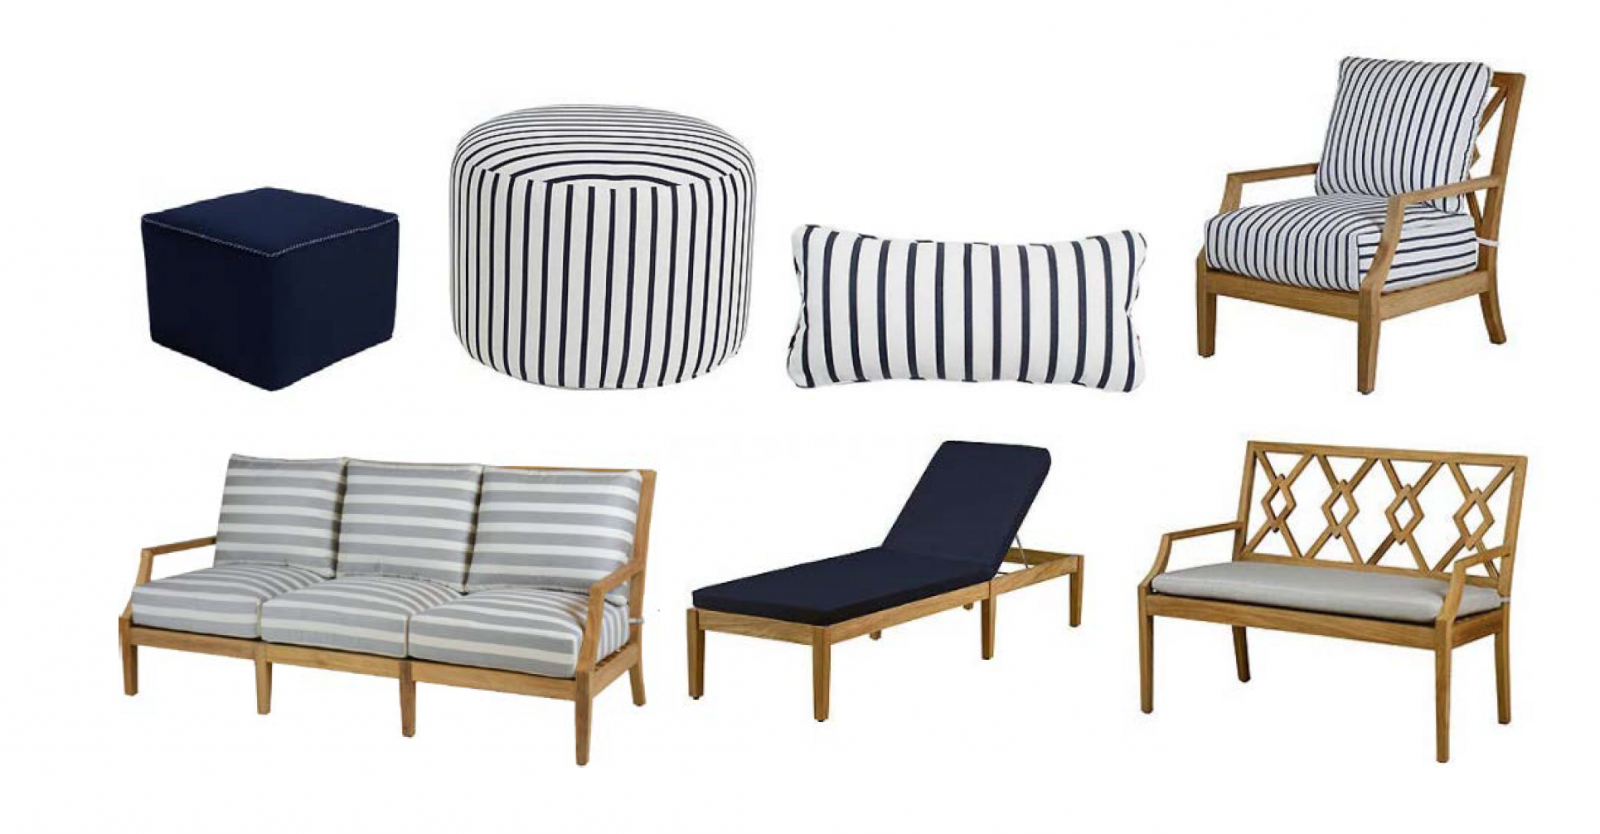 Chaise Lounge Chairs In White With Navy Cushions Intended For Widely Used One Kings Lane Launches New Outdoor Furniture Collections (View 24 of 25)